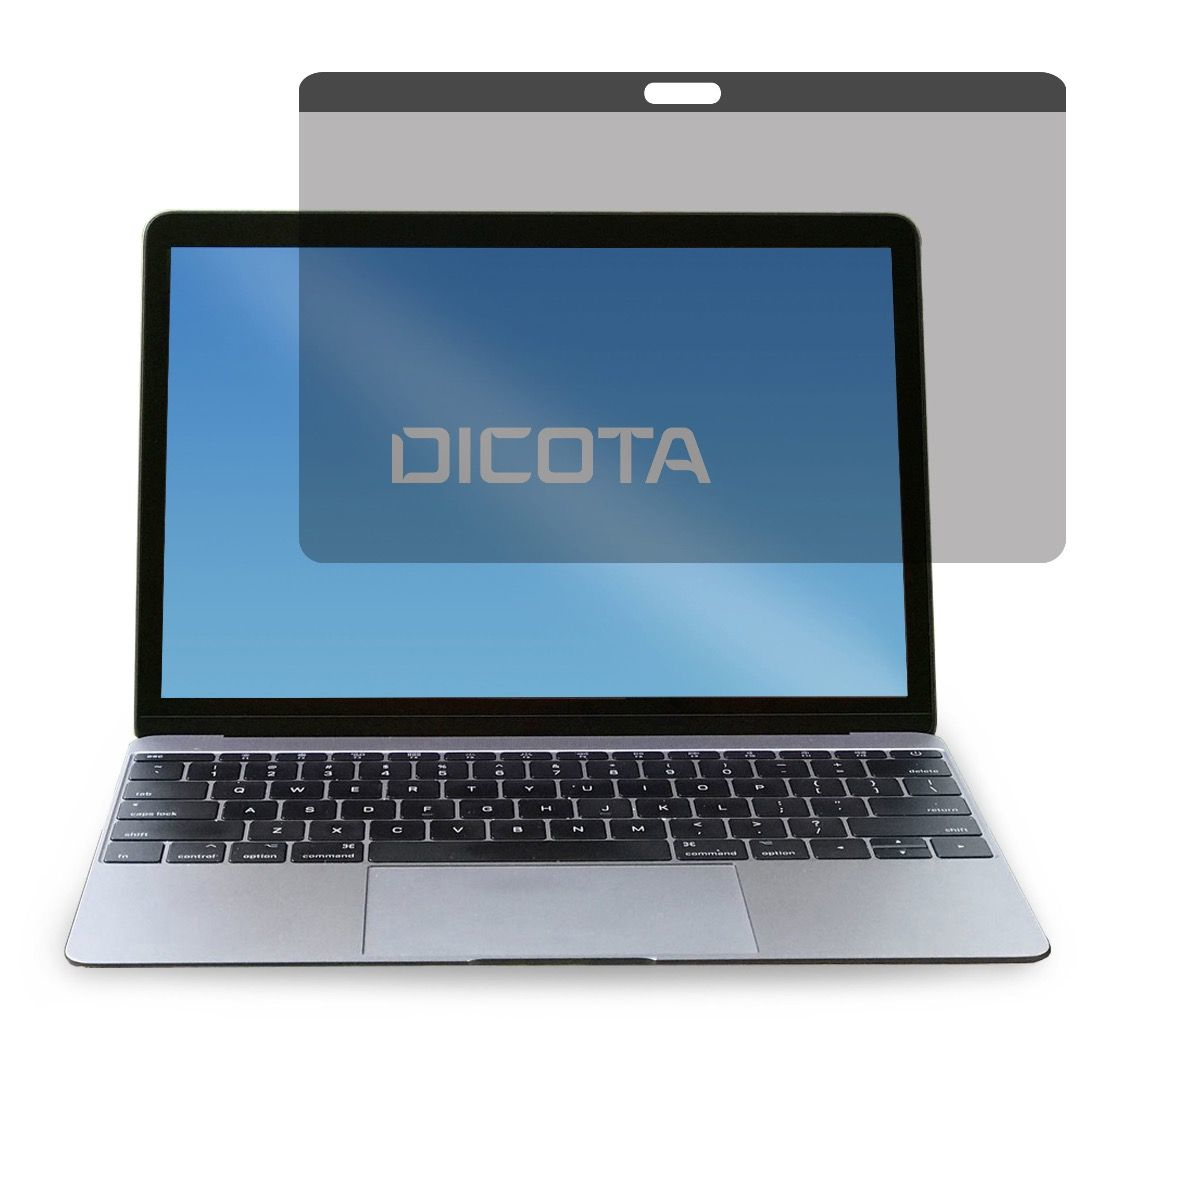 "Dicota D31588 Framed display privacy filter 30.5 cm (12"")"